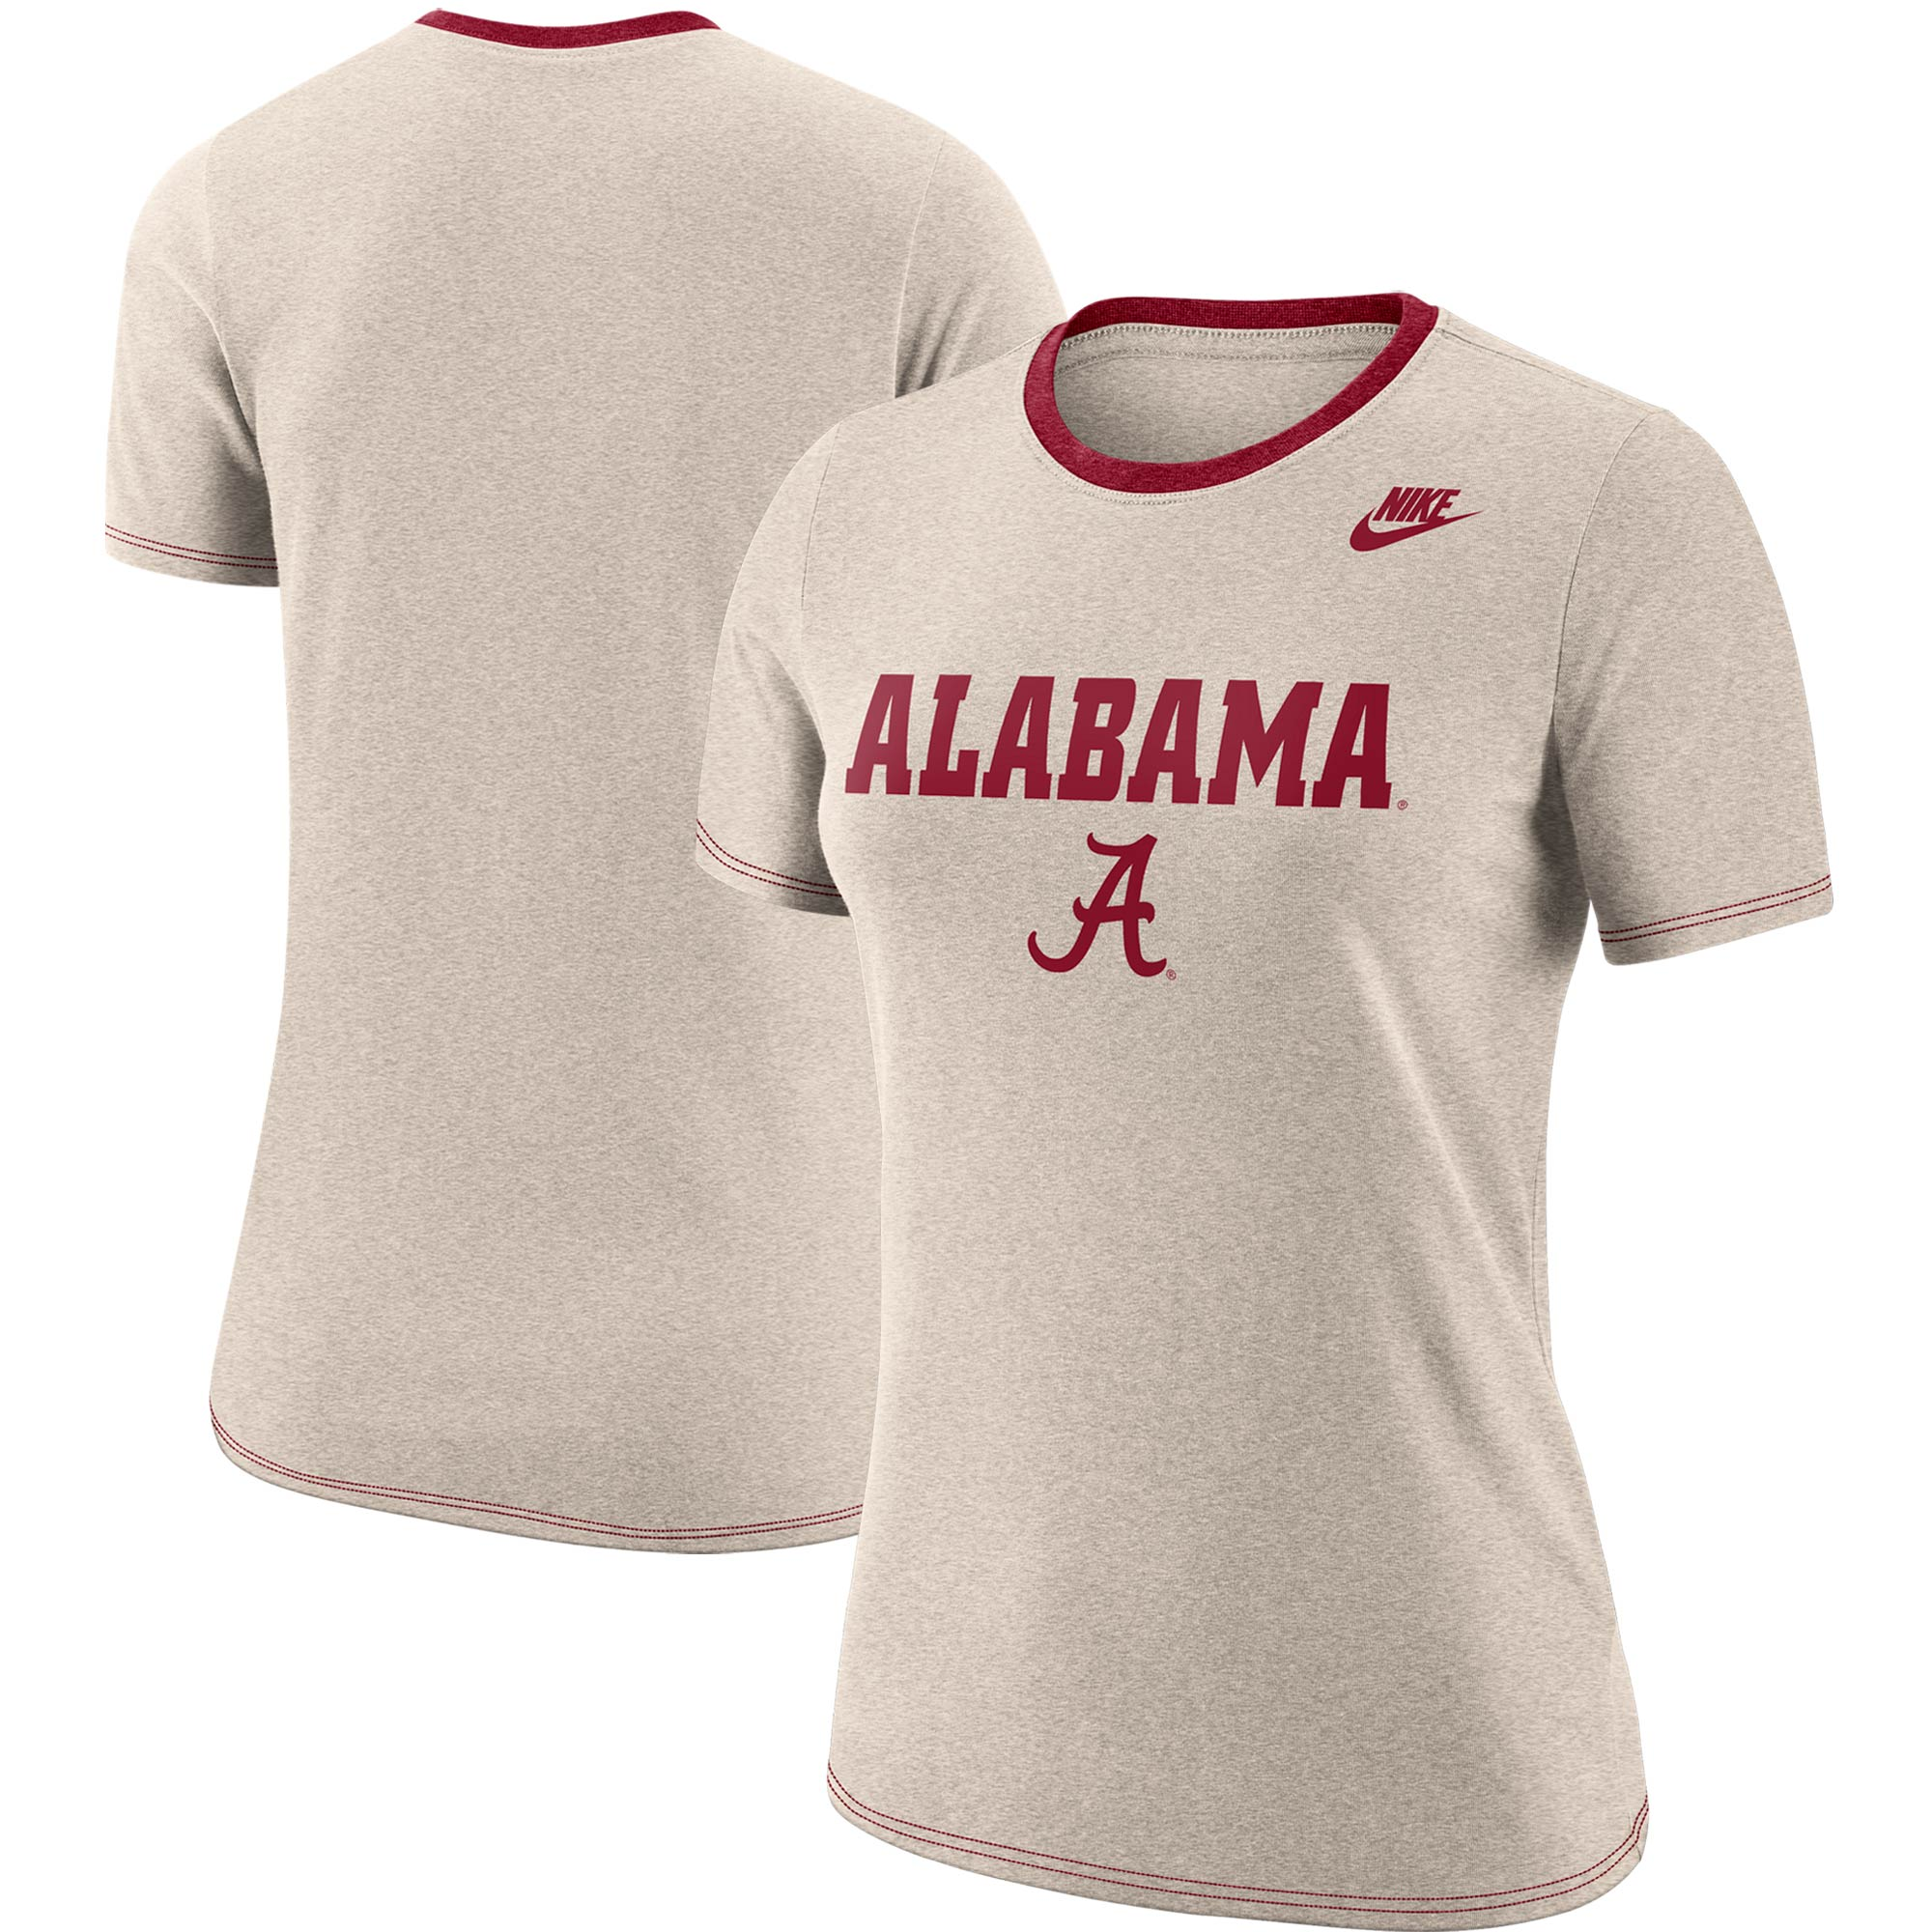 Nike Mens NCAA Alabama Crimson Tide Graphic T-Shirt